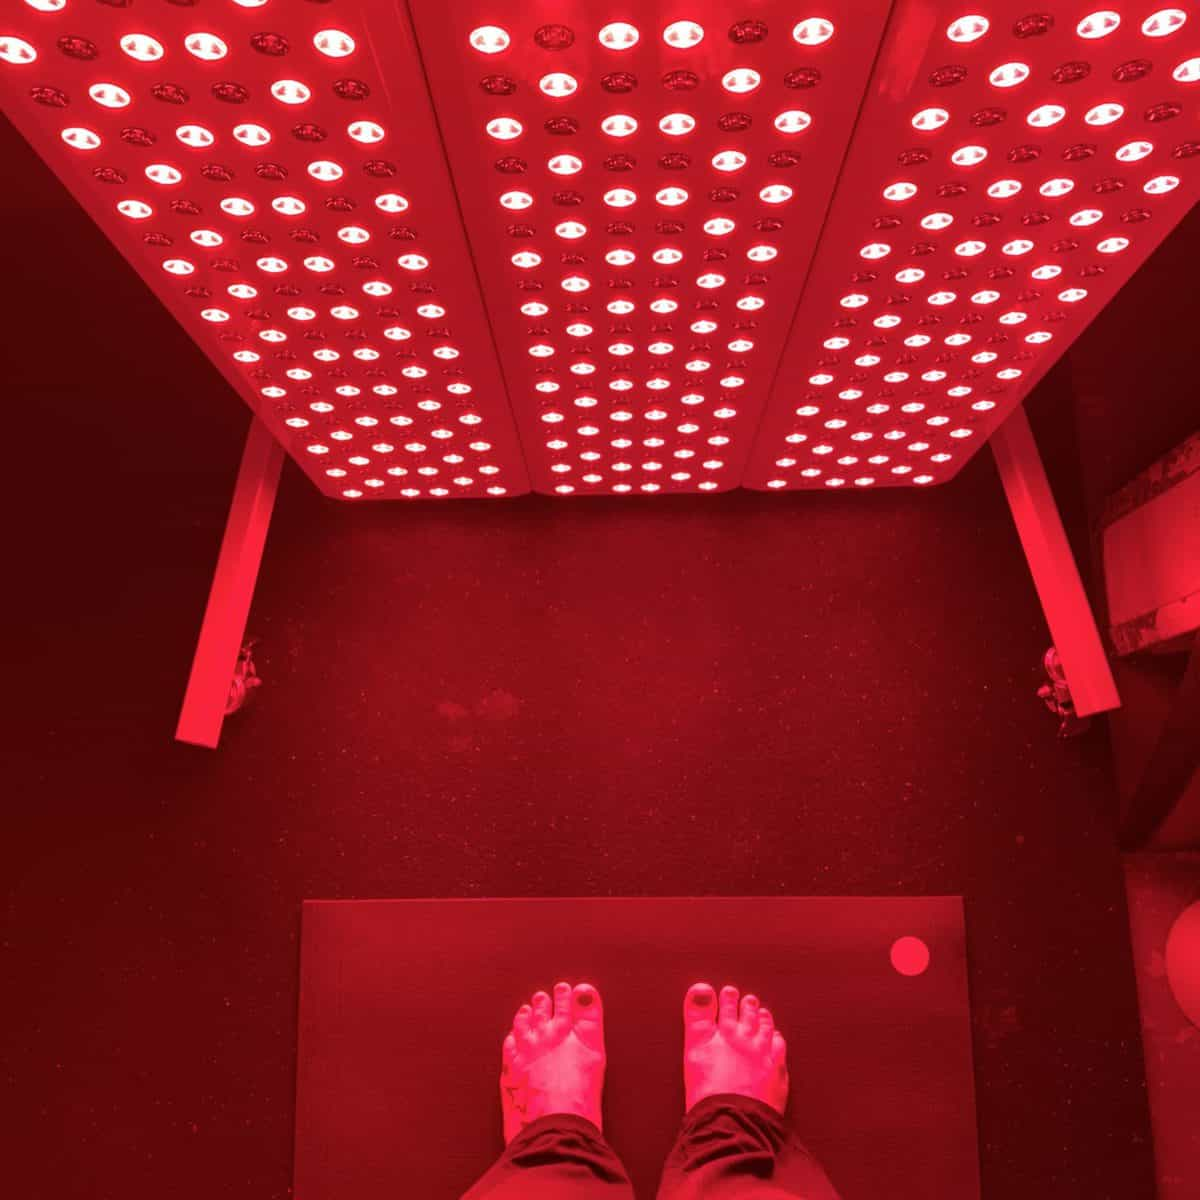 Women standing on a yoga mat in front of a red light therapy unit